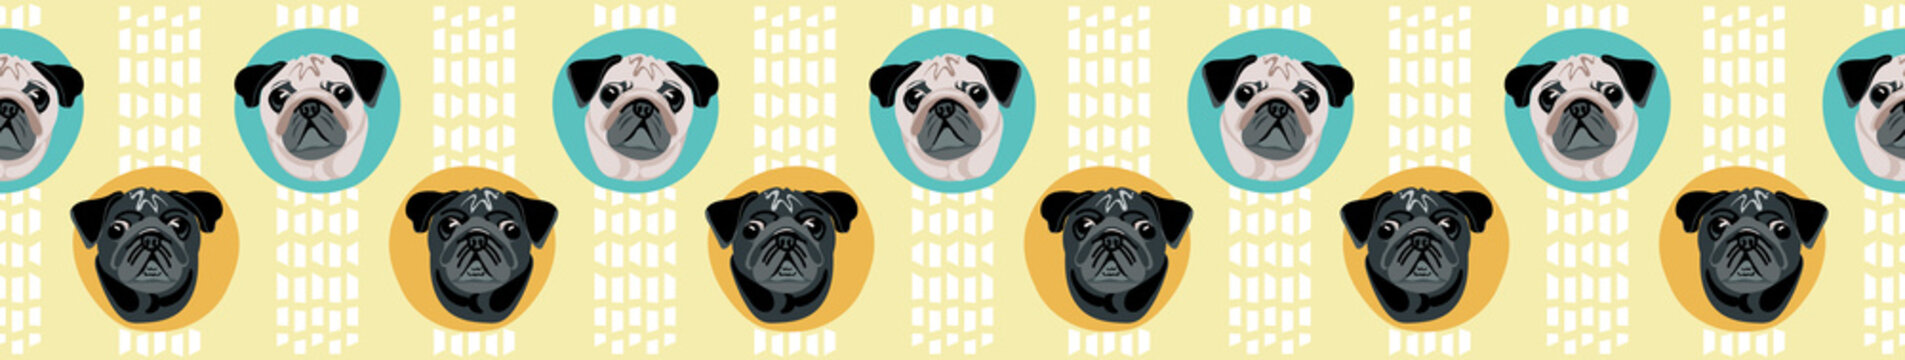 Cute cartoon pug faces in polka dot seamless border, Turquoise and yellow vector design great for tea towels, washi tape, ribbon, fabric edging dog supplies, groomers, dog walkers all all pug lovers!